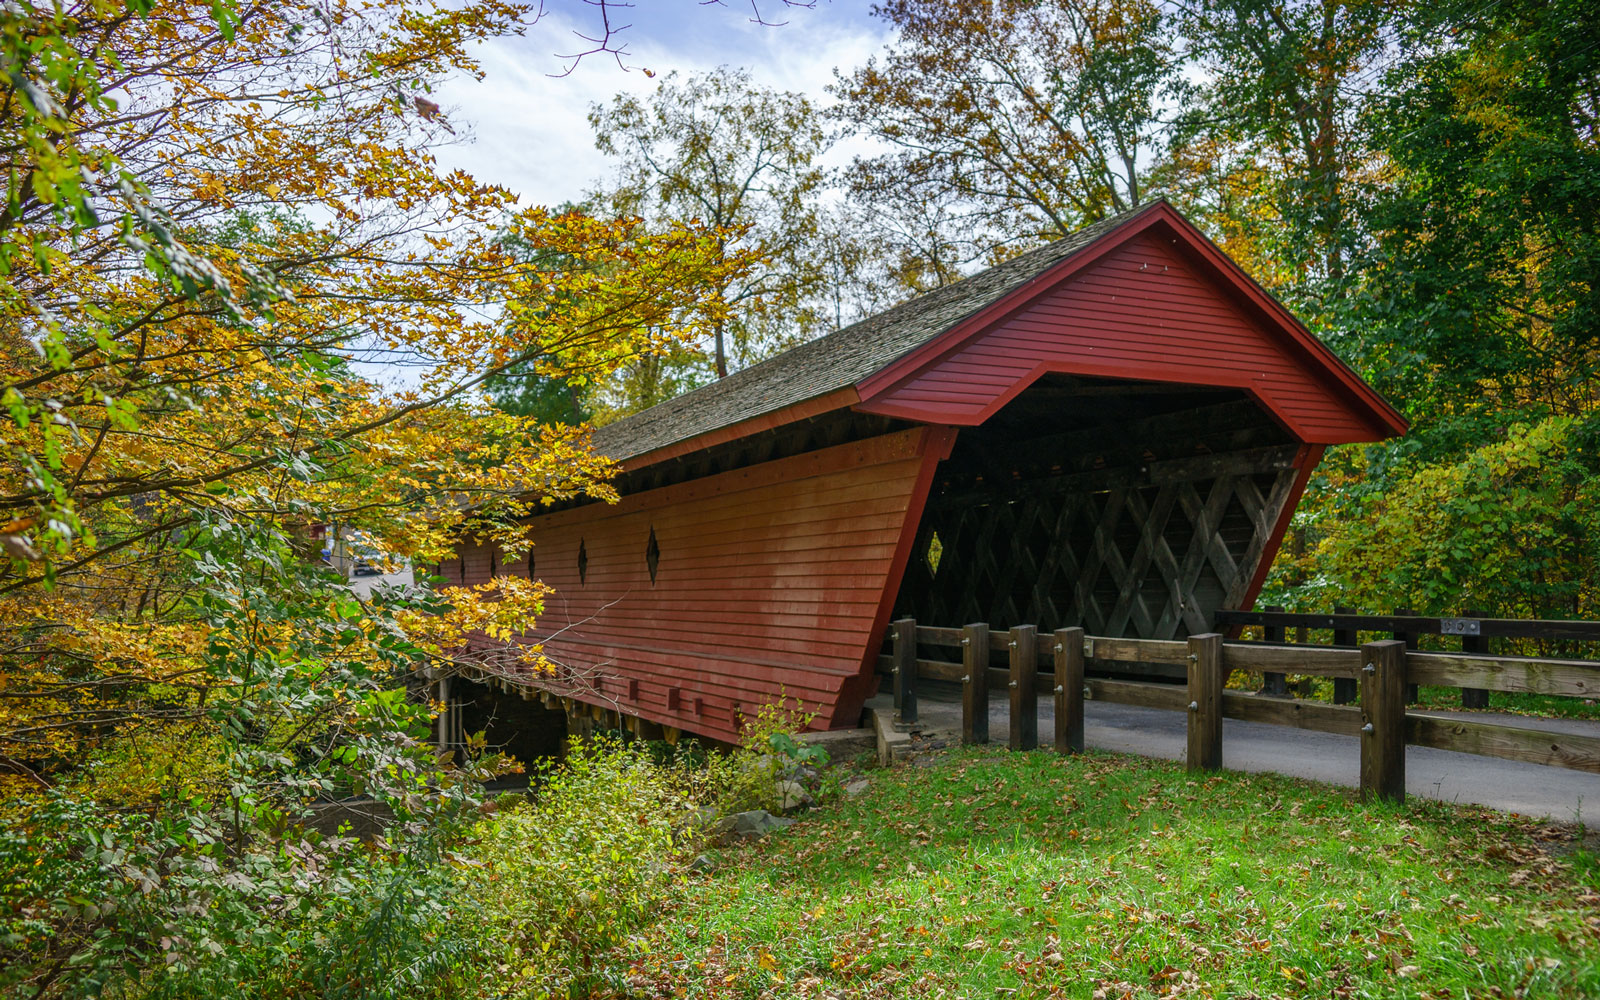 America's Most Beautiful Covered Bridges: Newfield